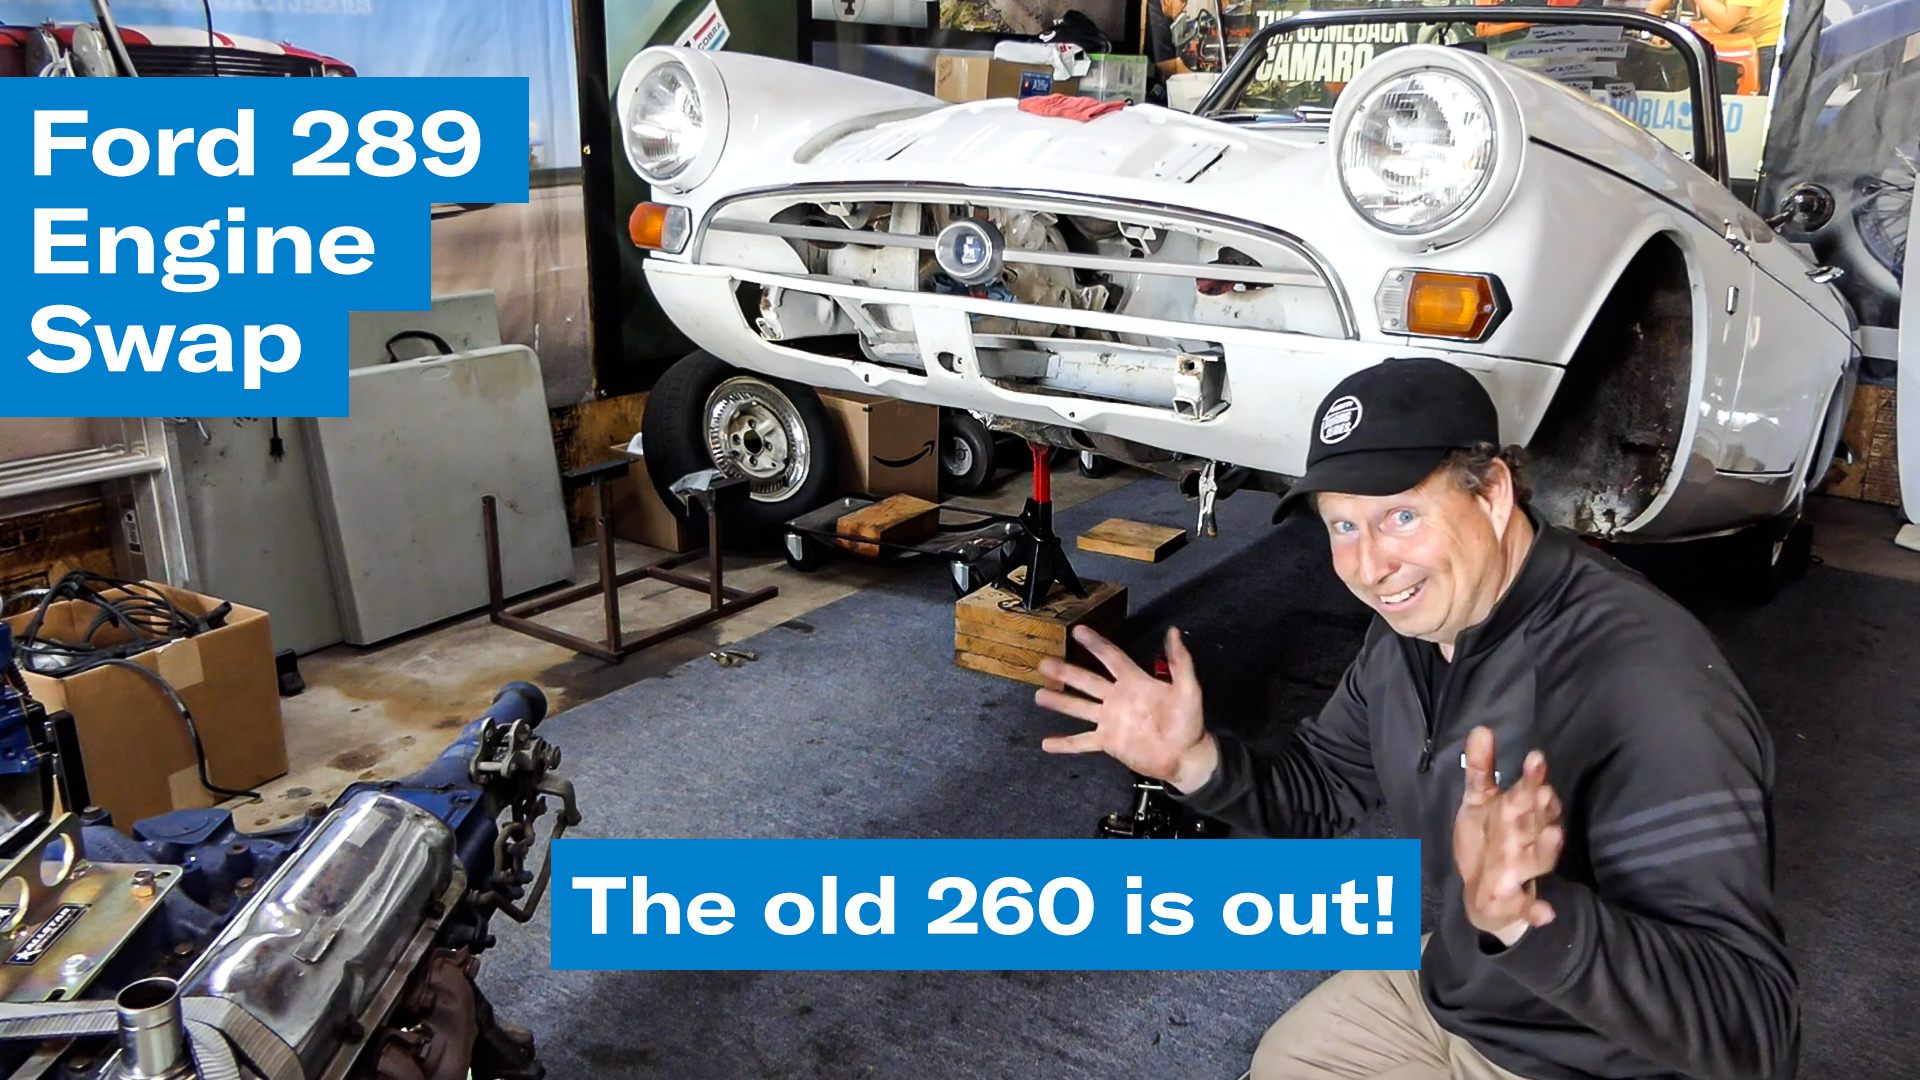 Out with the old Ford 260 | Sunbeam Tiger engine swap project